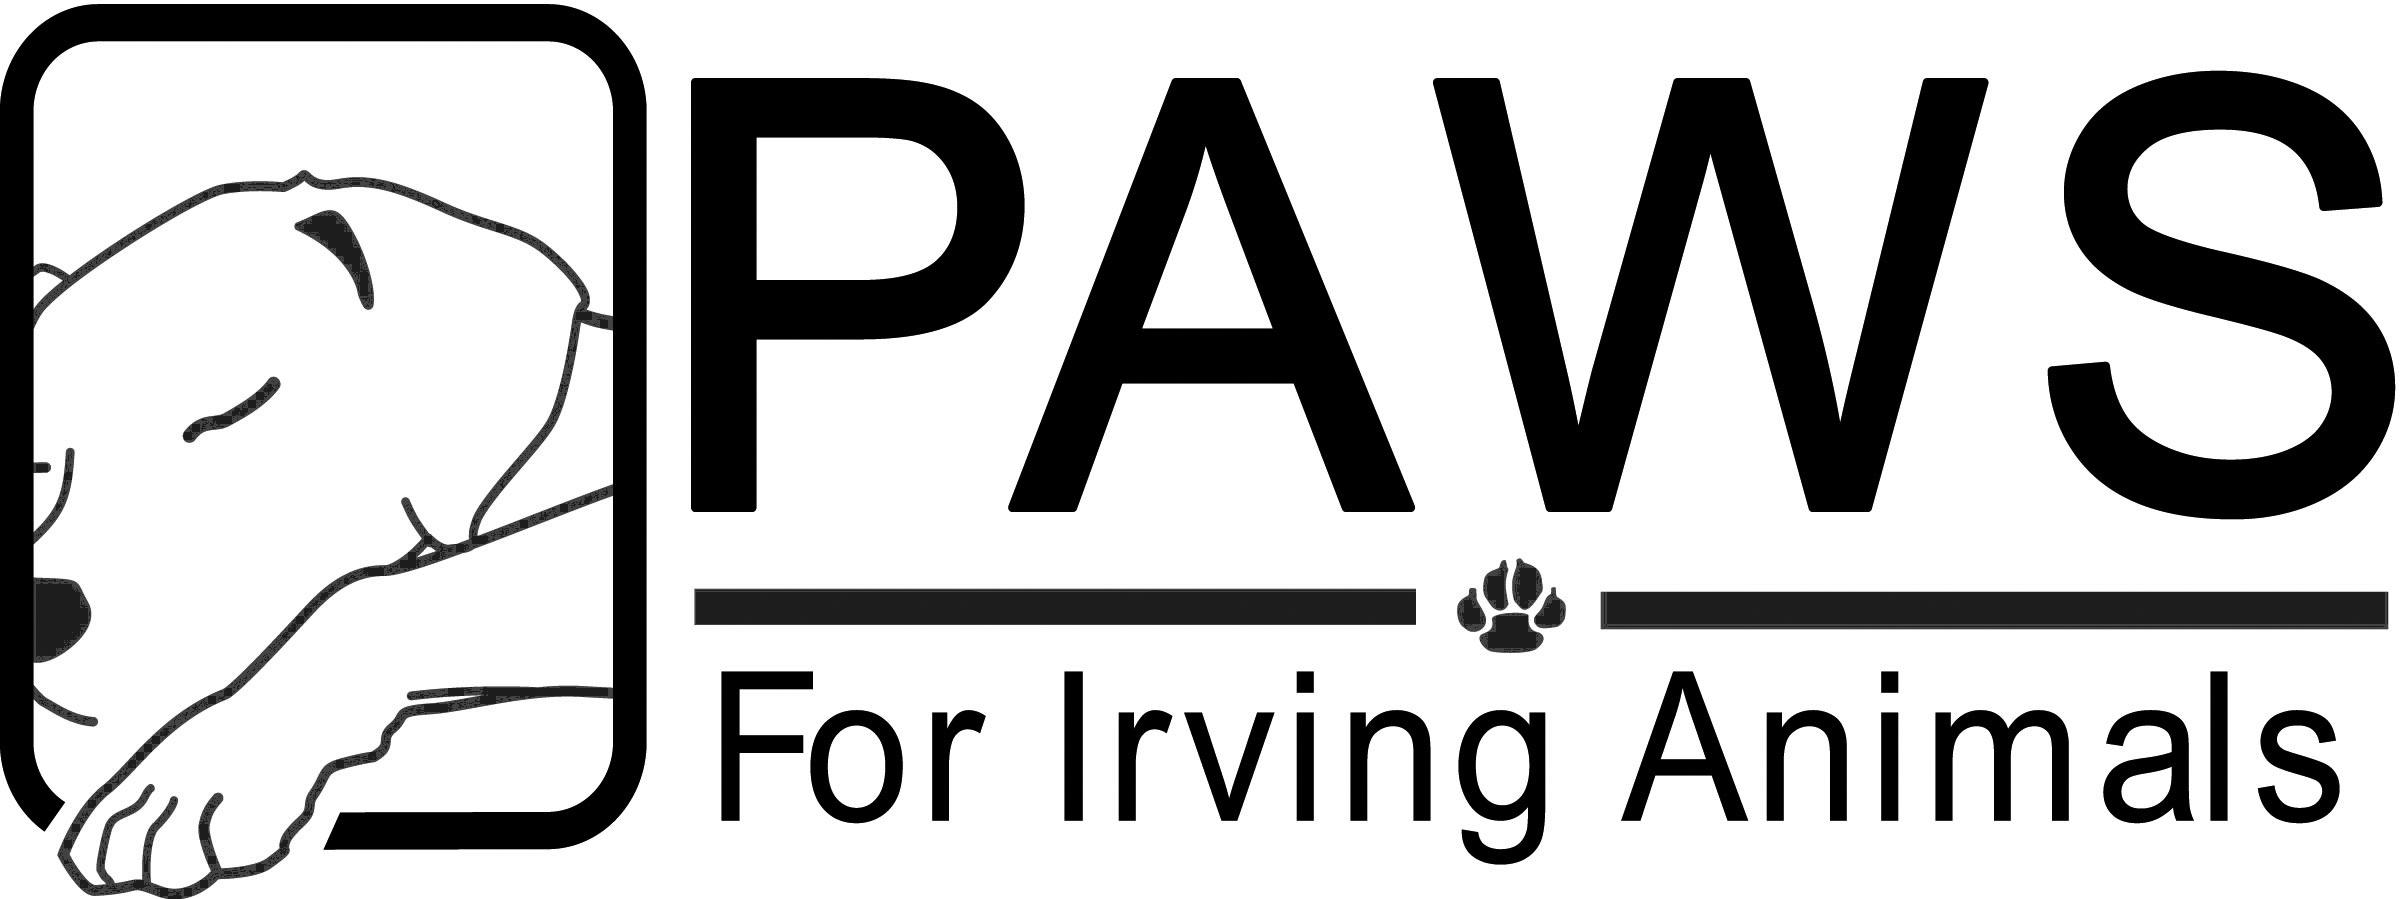 Pets for Adoption at PAWS for Irving Animals, in Irving